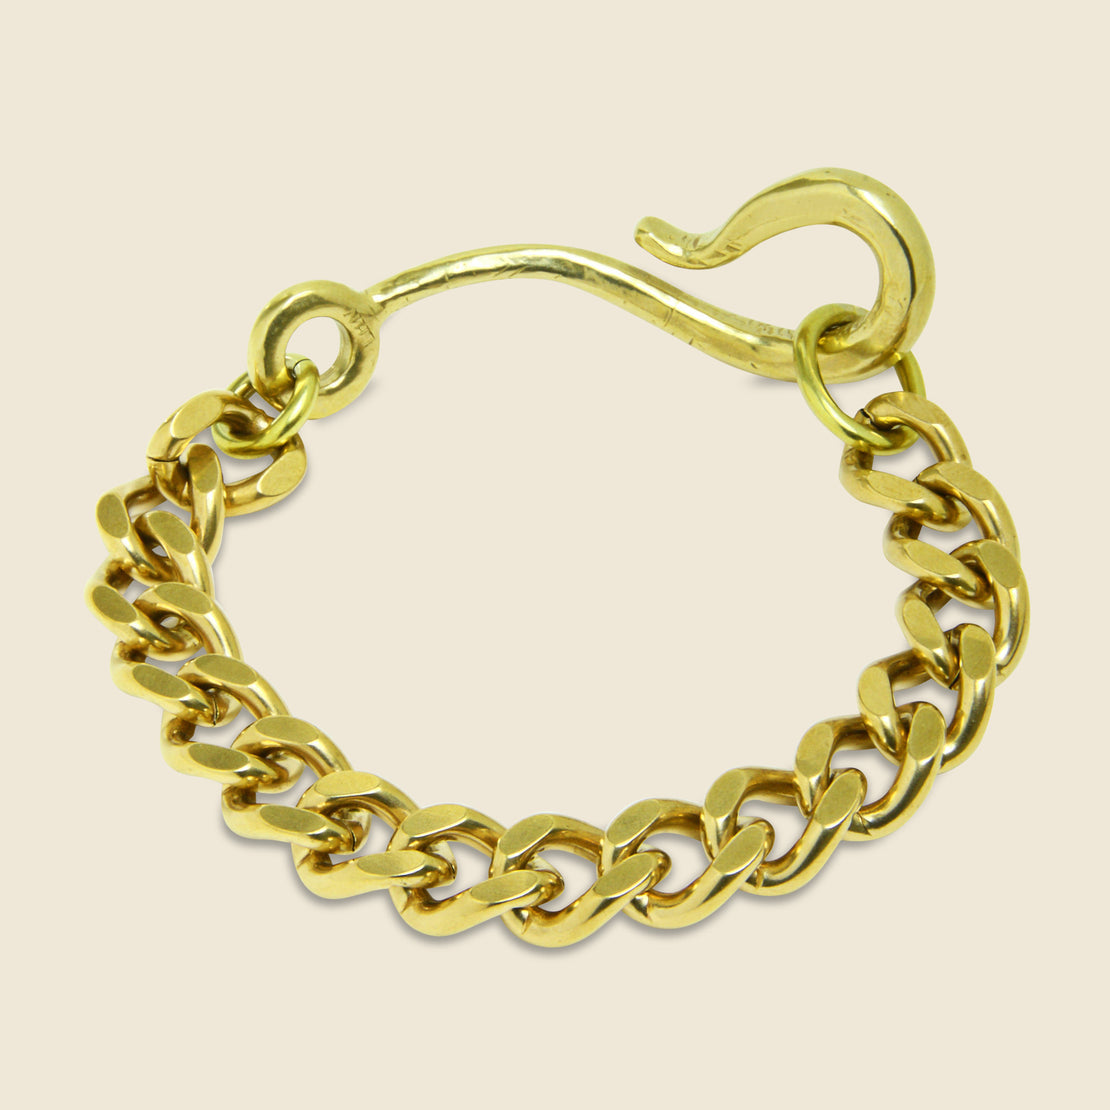 Large Hook Chain Bracelet - Brass - LHN Jewelry - STAG Provisions - Accessories - Cuffs